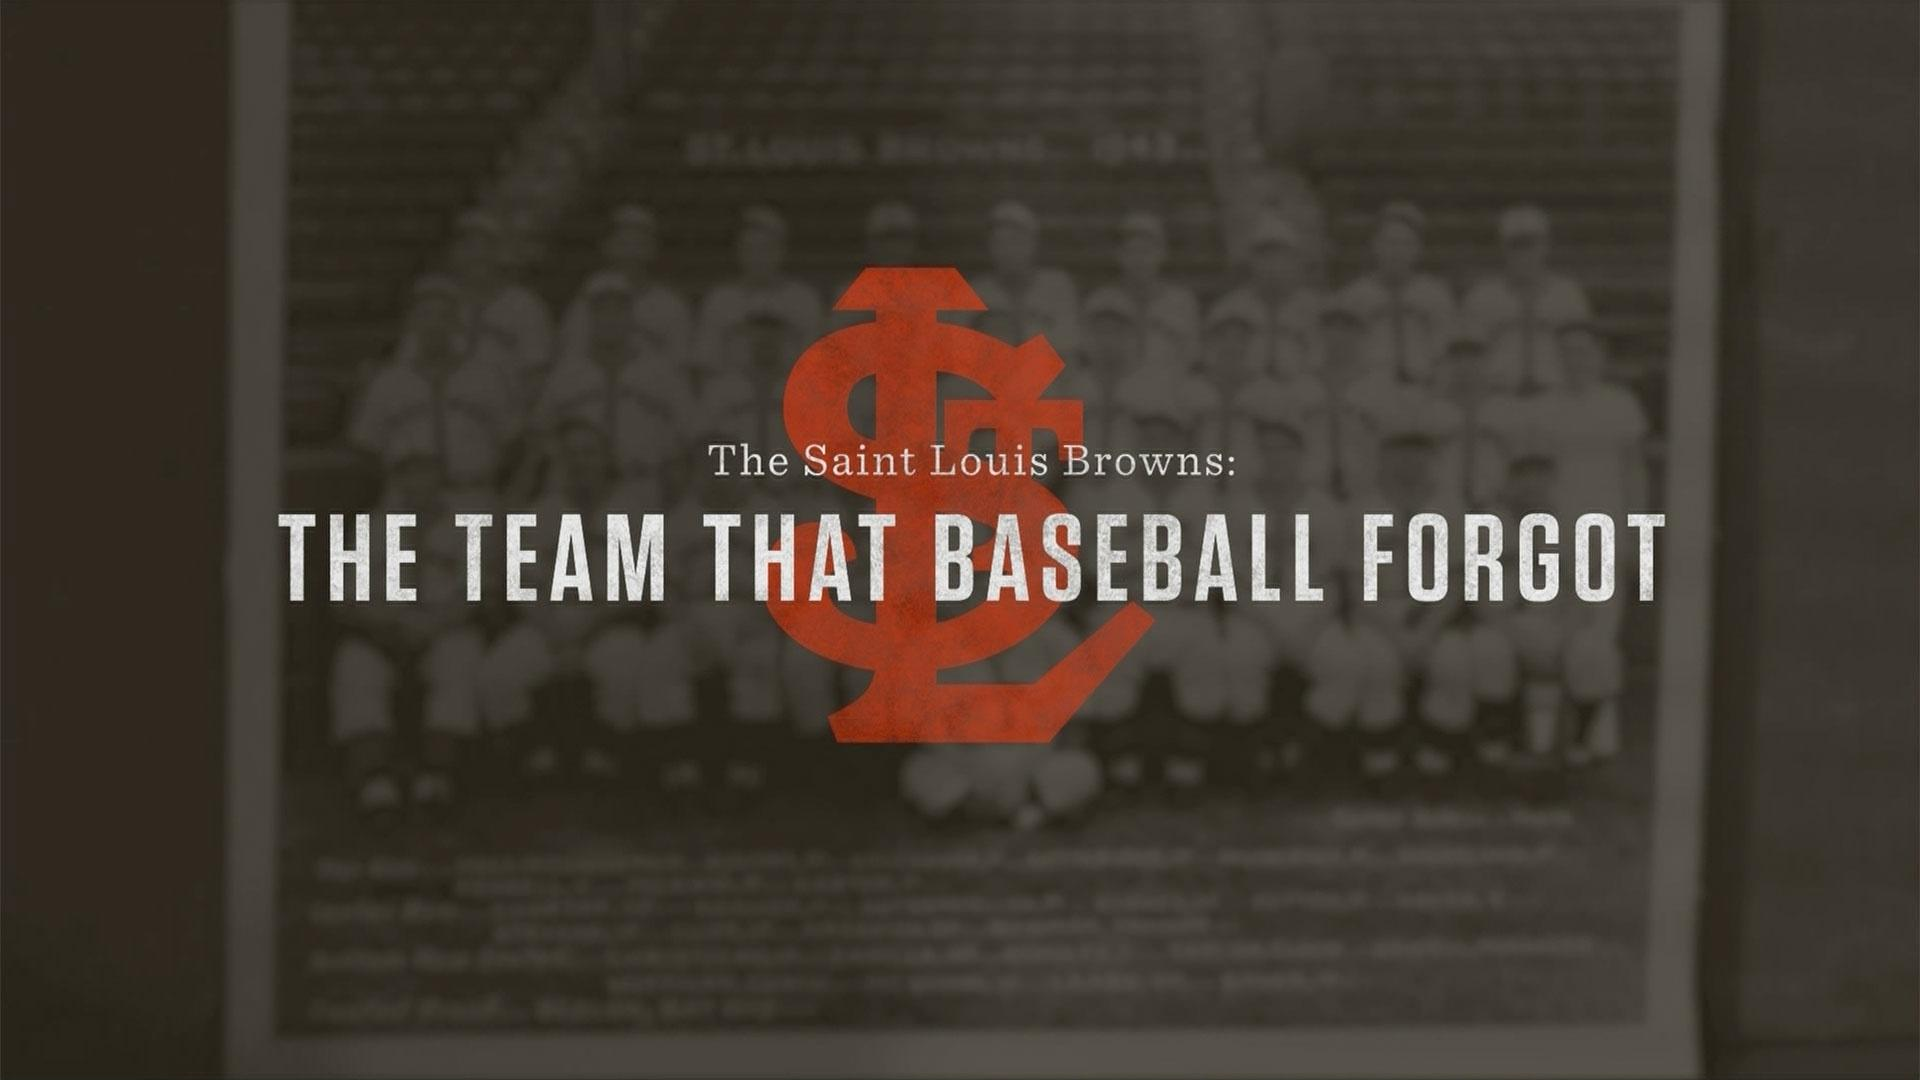 The St. Louis Browns: The Team that Baseball Forgot